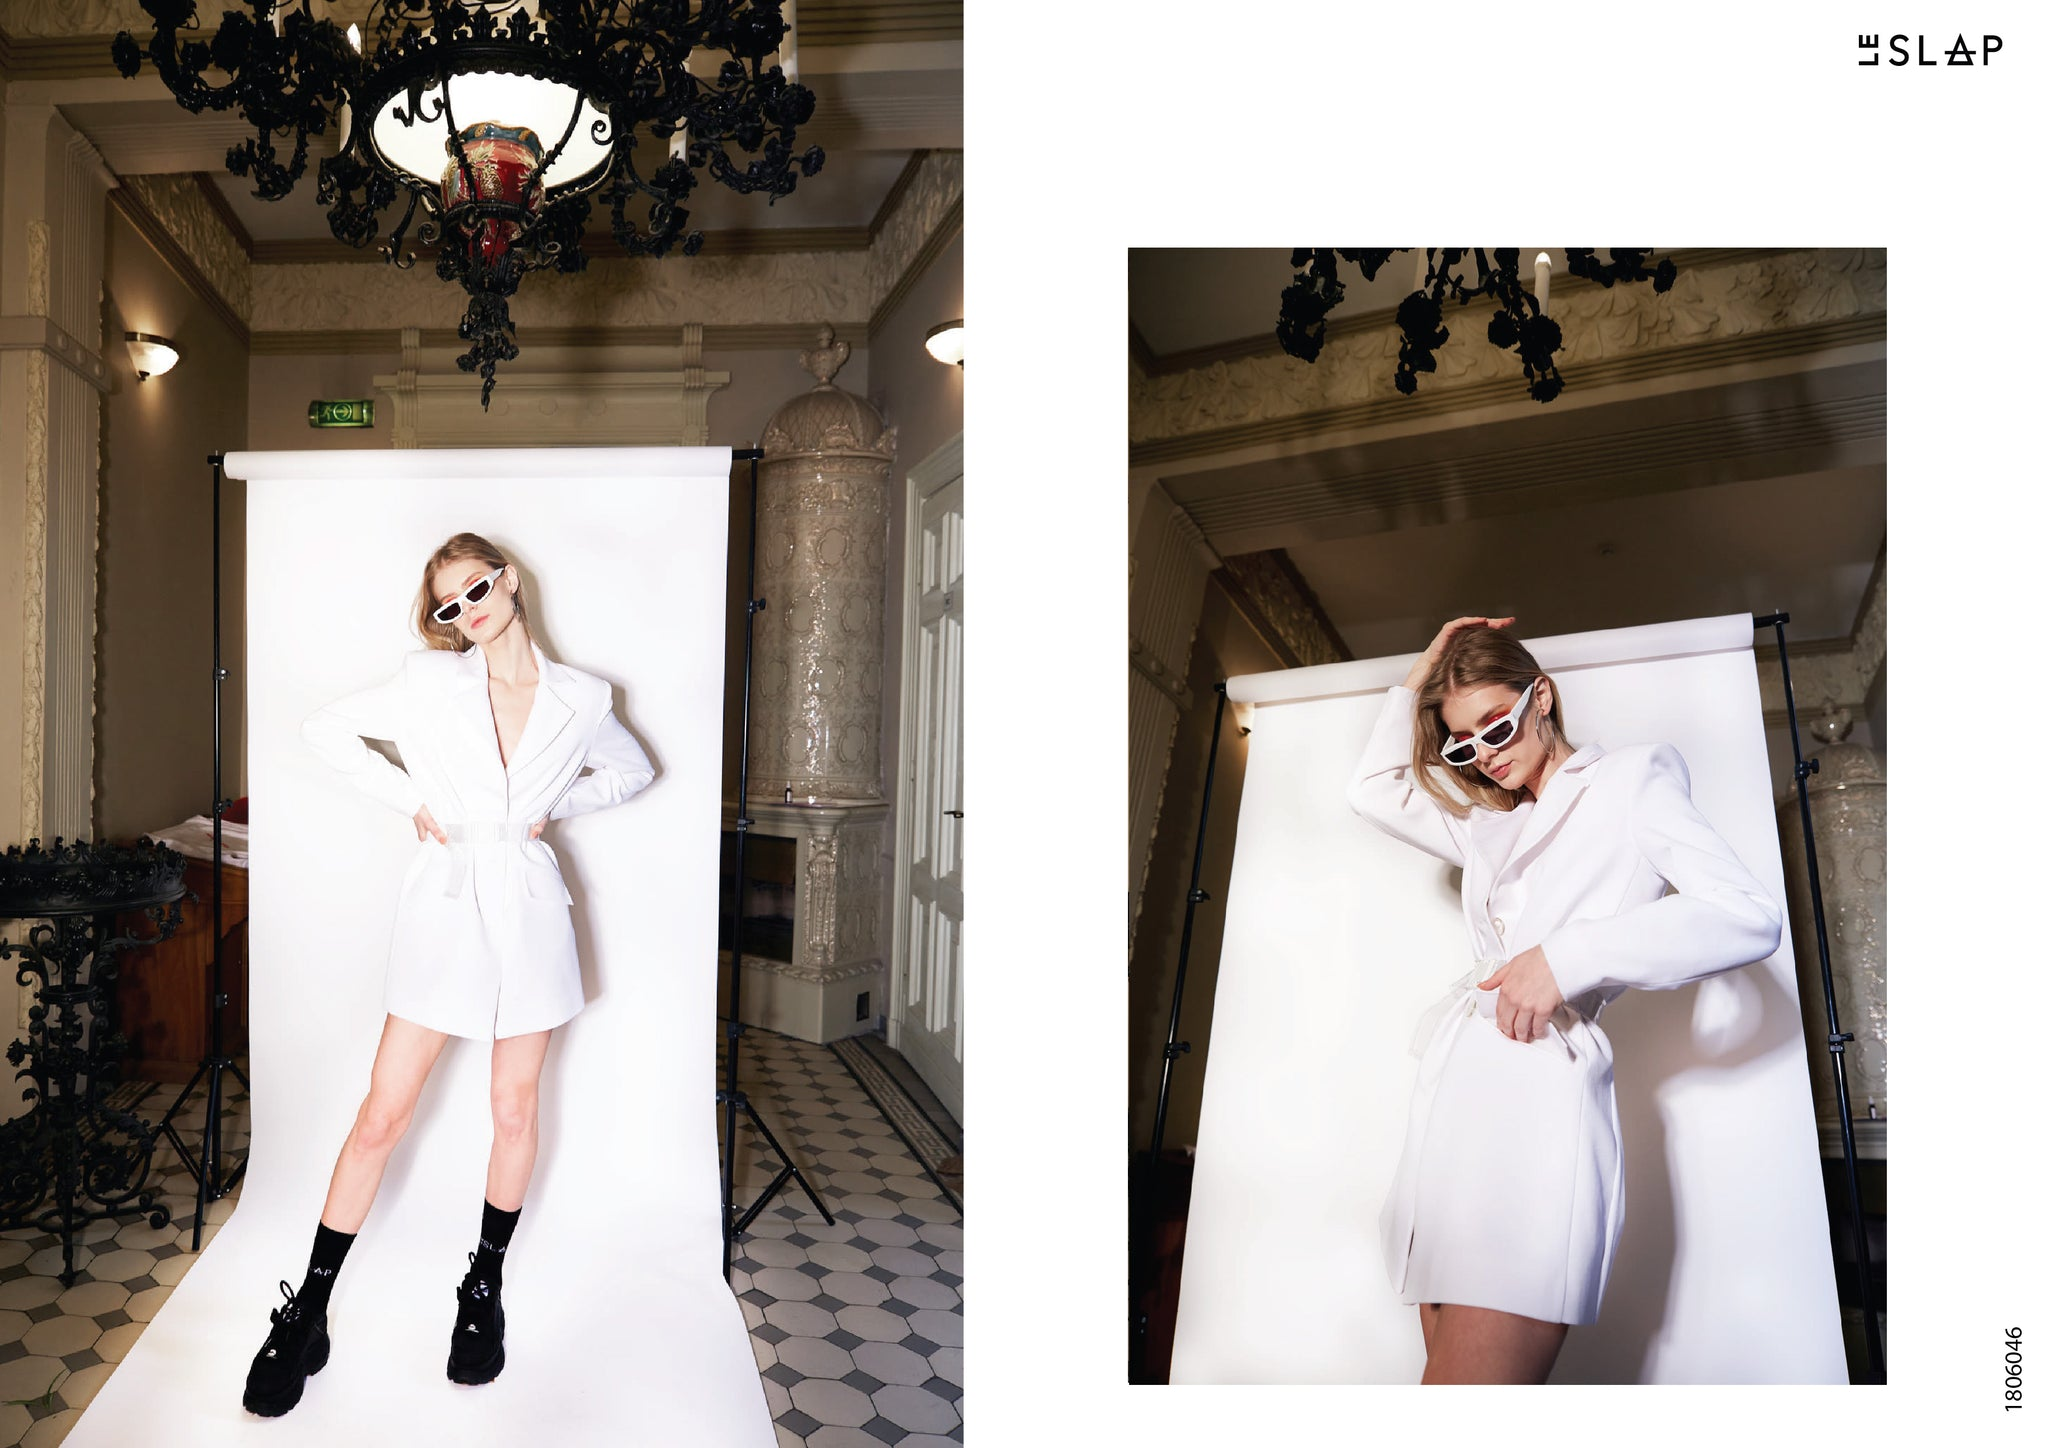 Le SLAP clothing brand lookbook statement fashion photoshoot  White tailoring dress/ jacket with two belts